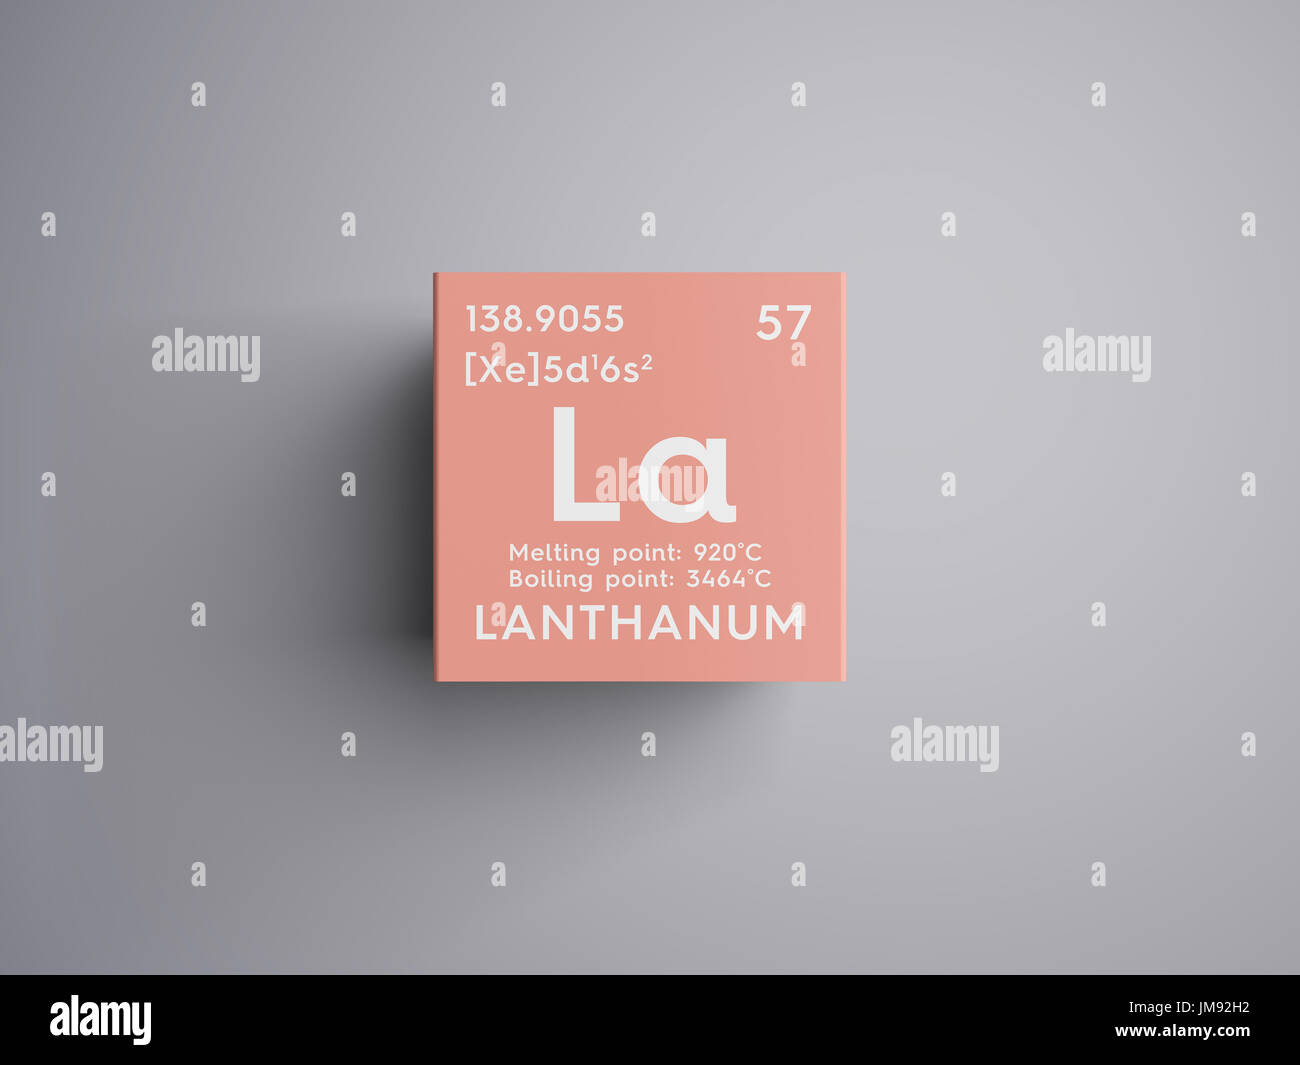 Periodic table 92 images periodic table images lanthanum periodic table image collections periodic table images symbol chemical element lanthanum stock photos symbol chemical gamestrikefo Image collections